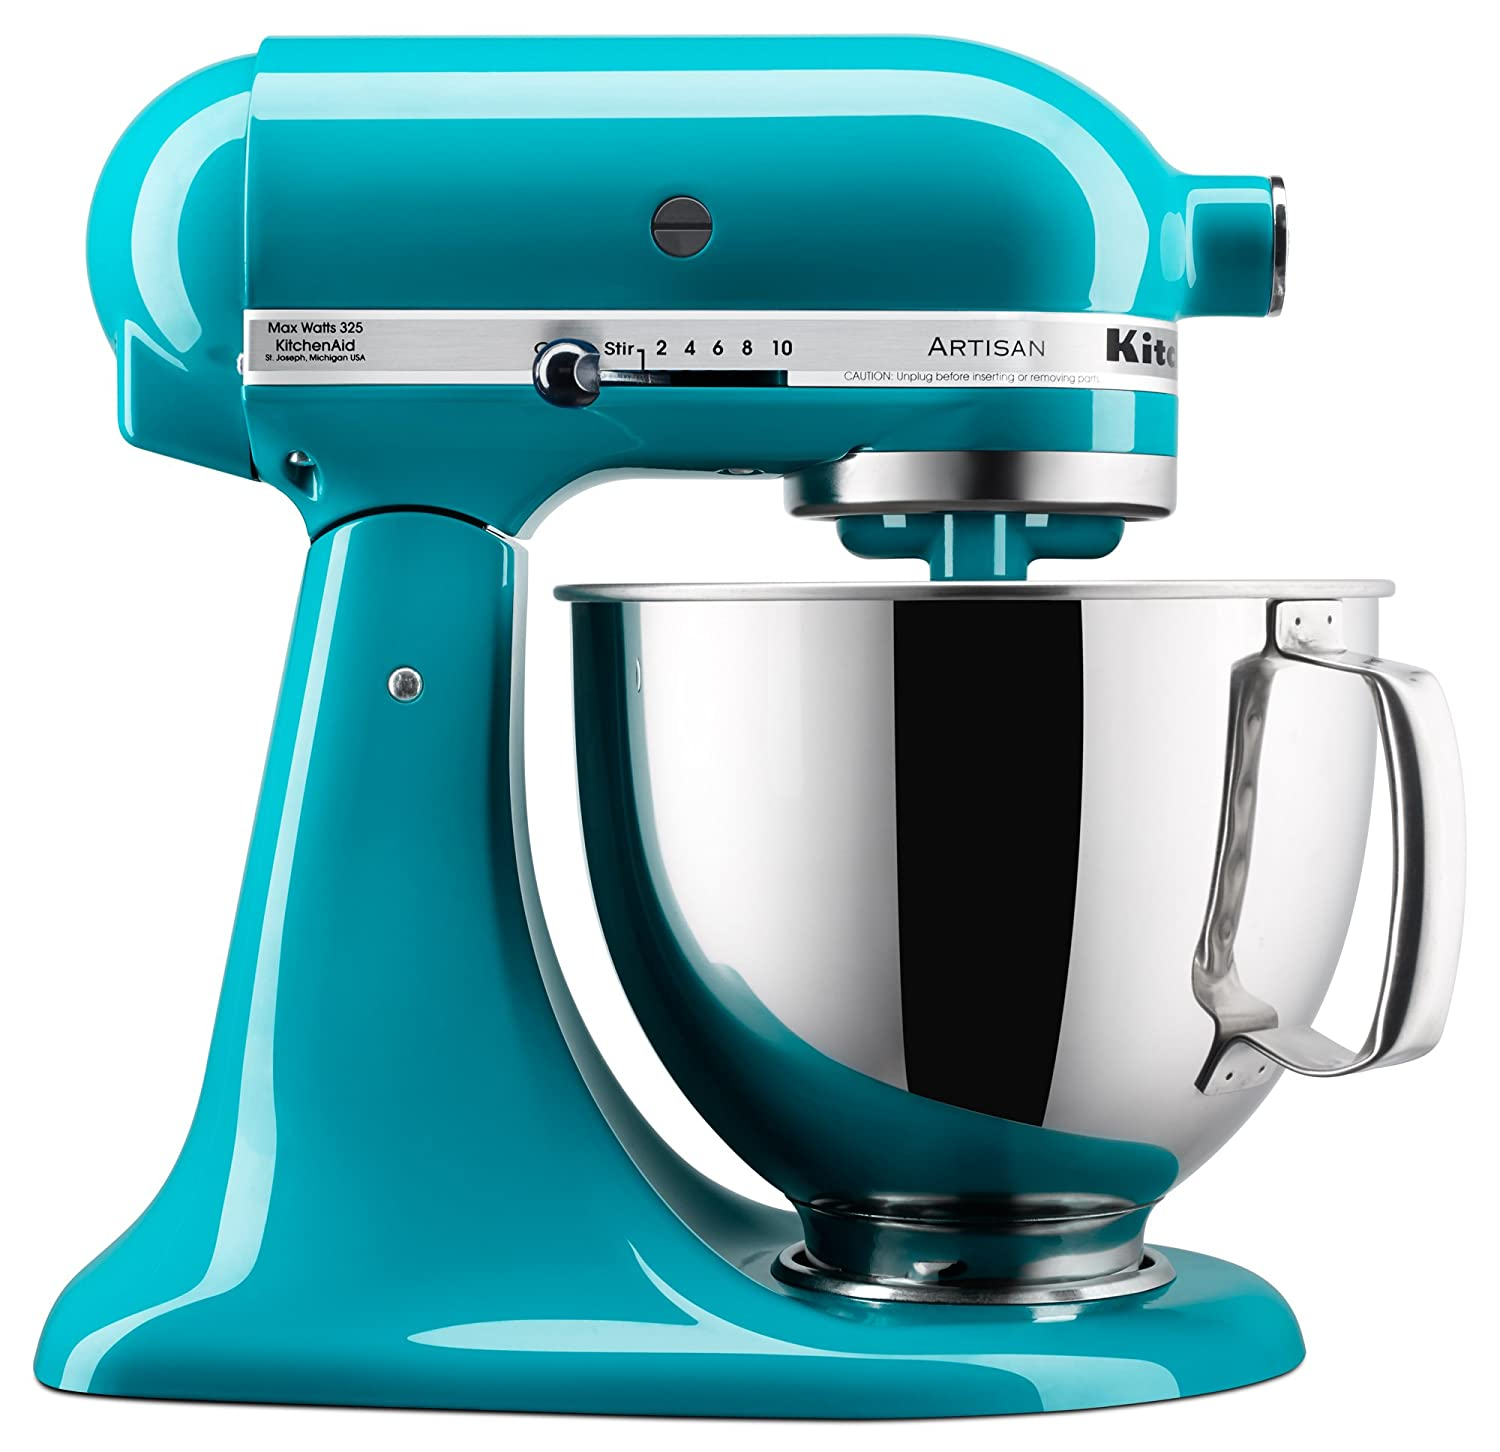 Amazon.com: KitchenAid KSM150PSON KSM150PSON Stand Mixer, 5 Quart, Ocean  Drive: Kitchen U0026 Dining